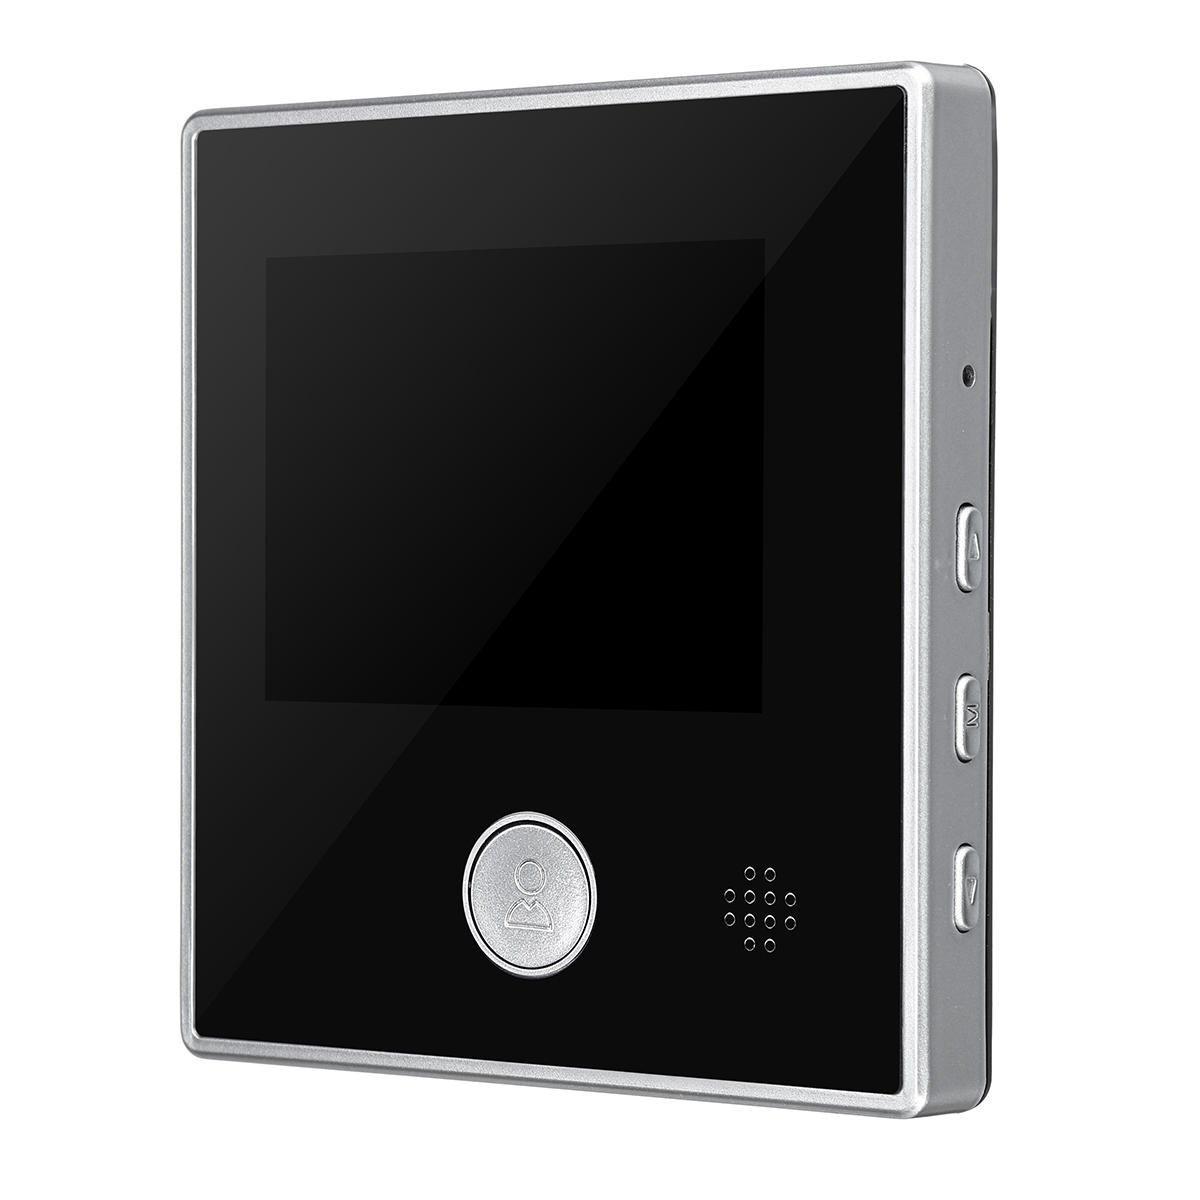 ENNIO 9 inch 2 Monitors Wifi Wireless Fingerprint RFID Video Door Phone Doorbell Intercom System with Wired AHD 1080P Door Access Control System,Support Remote APP Unlocking,Recording - 3